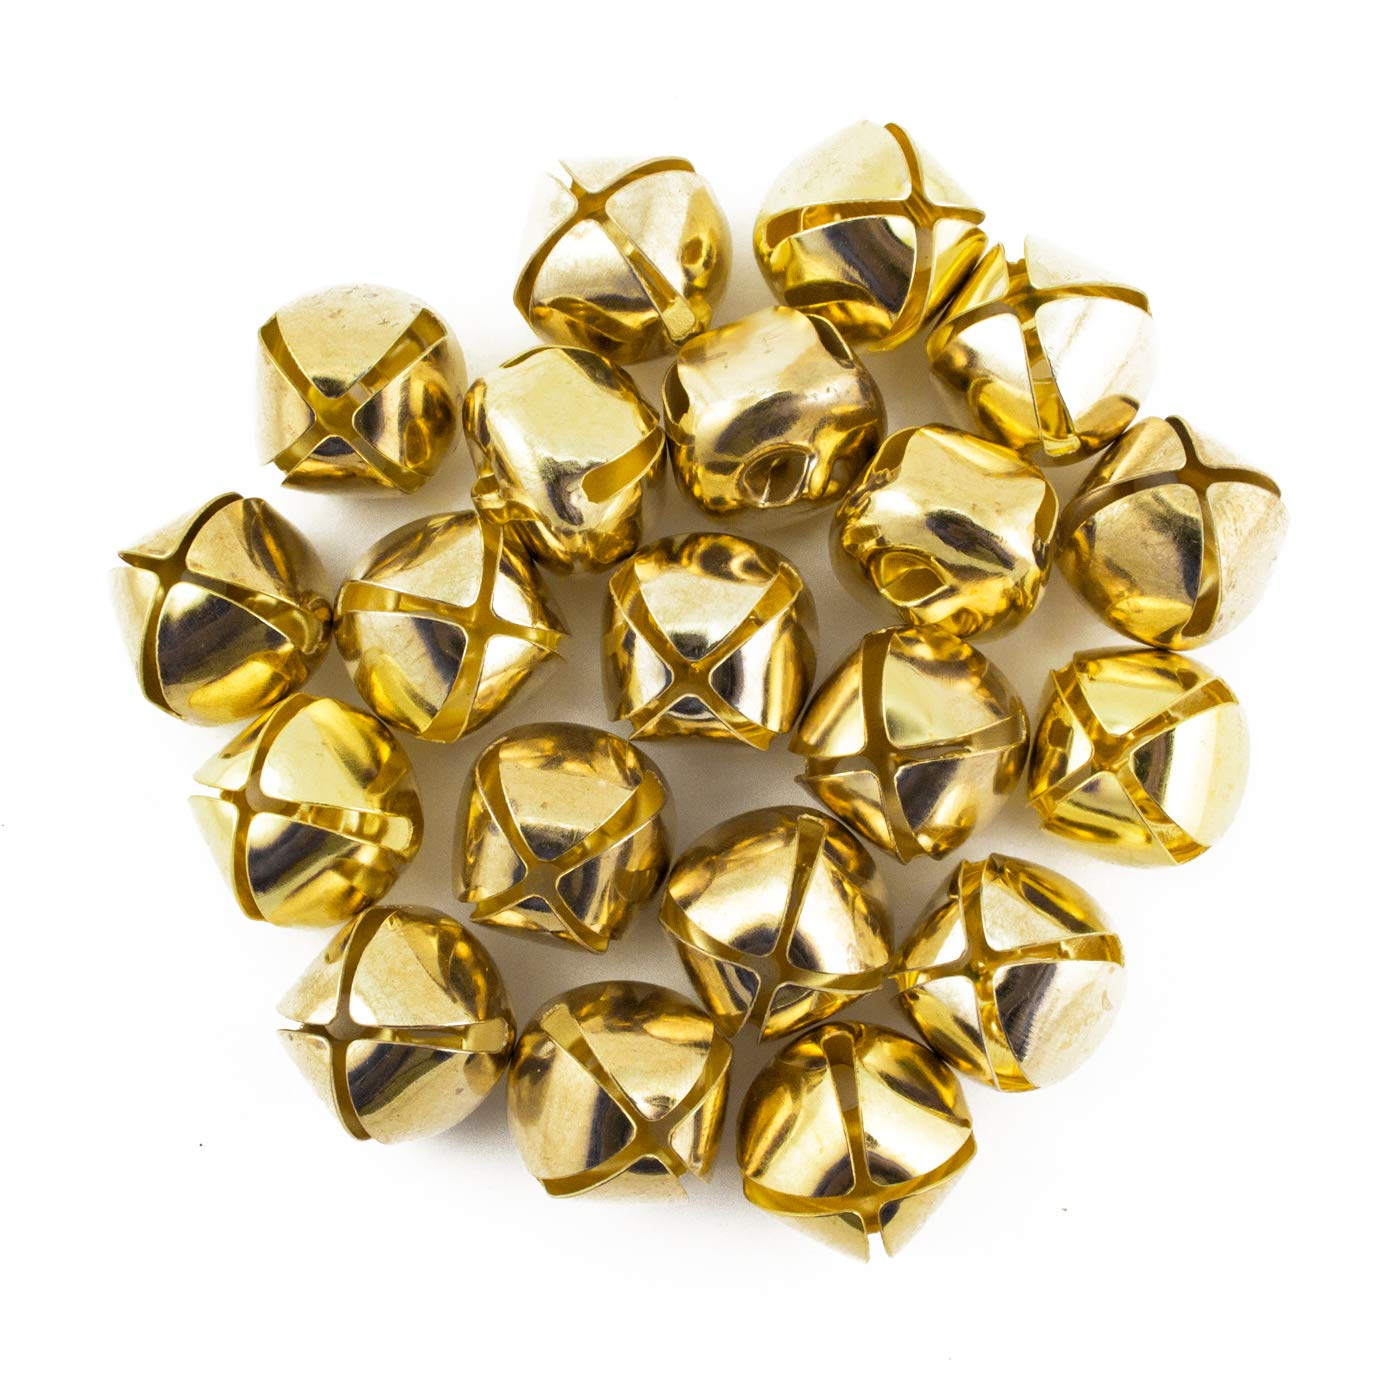 Aplus SHOP Small Jingle Bell 10MM Christmas DIY Craft Bells Gold Metal Mini Bell for Children Birth Party Wedding Jewellery Decoration Charm 100PCS